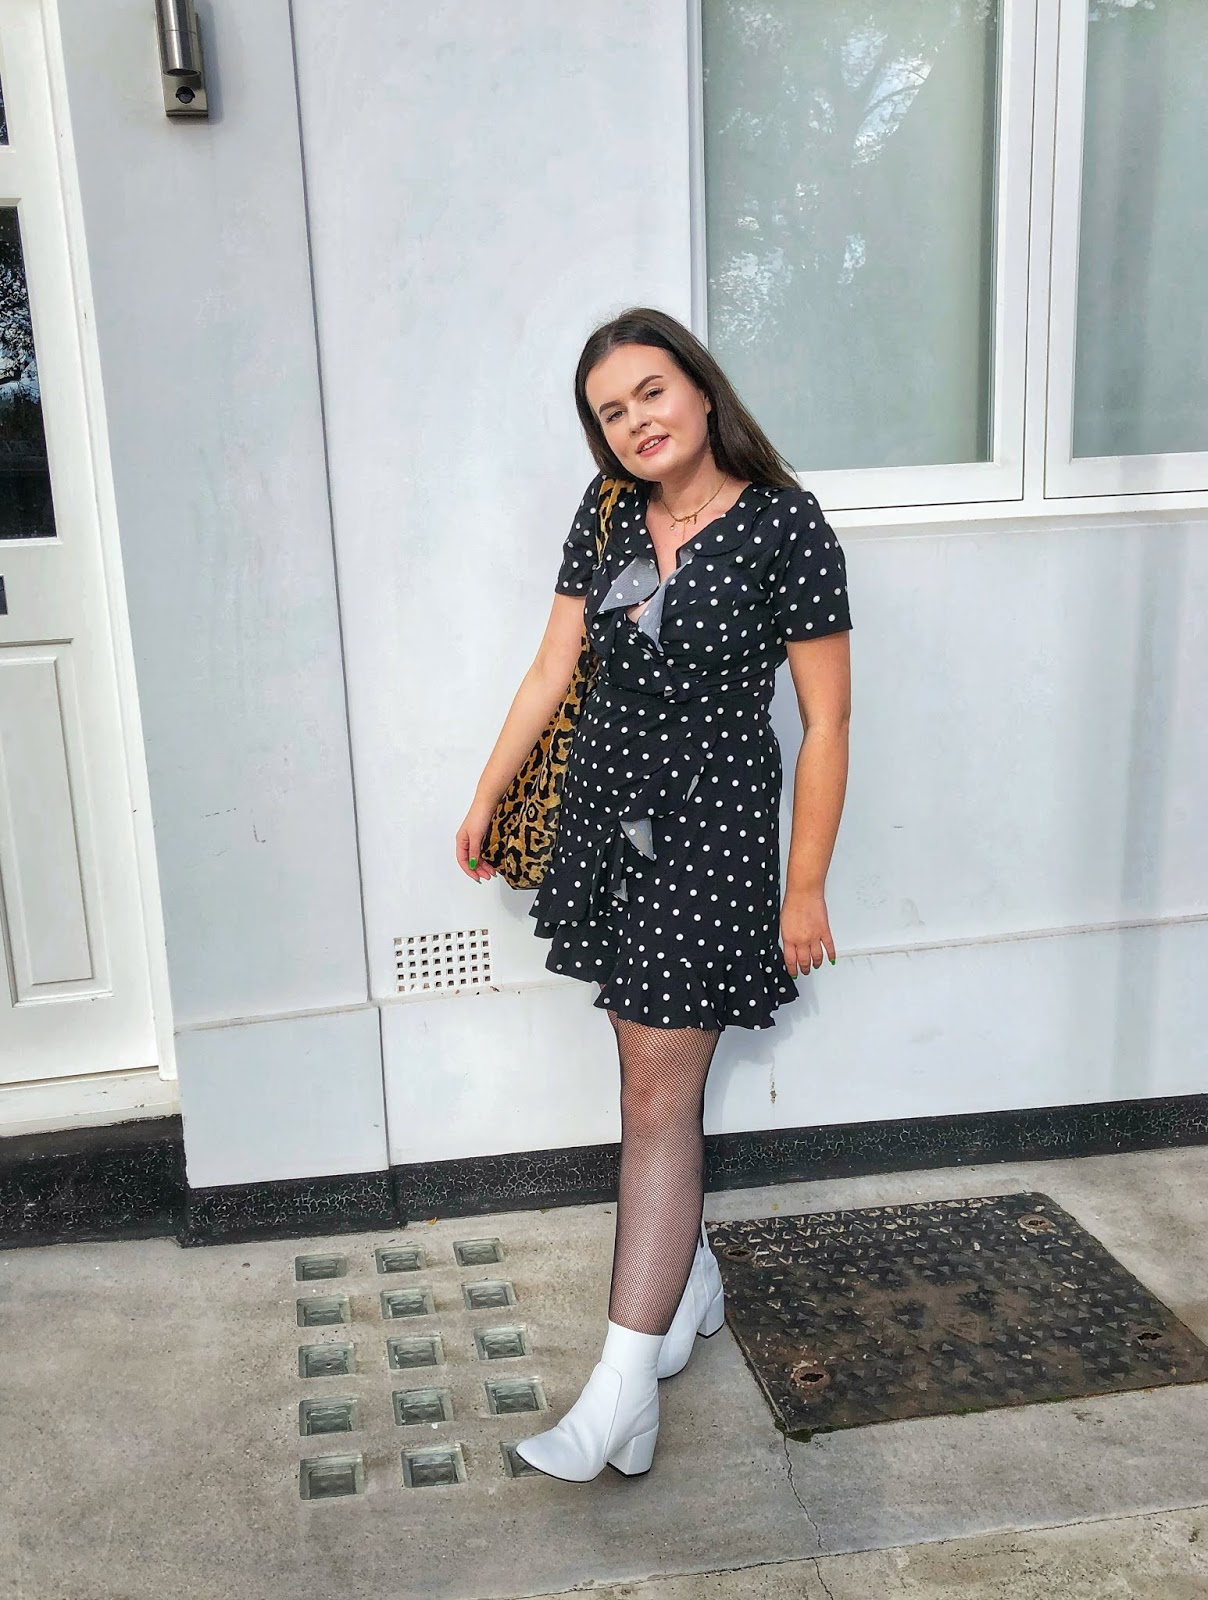 look again aw collection, polka dot dress 2018, jeffery campbell uk, autumn style, uk fashion blogger, midsize style blogger